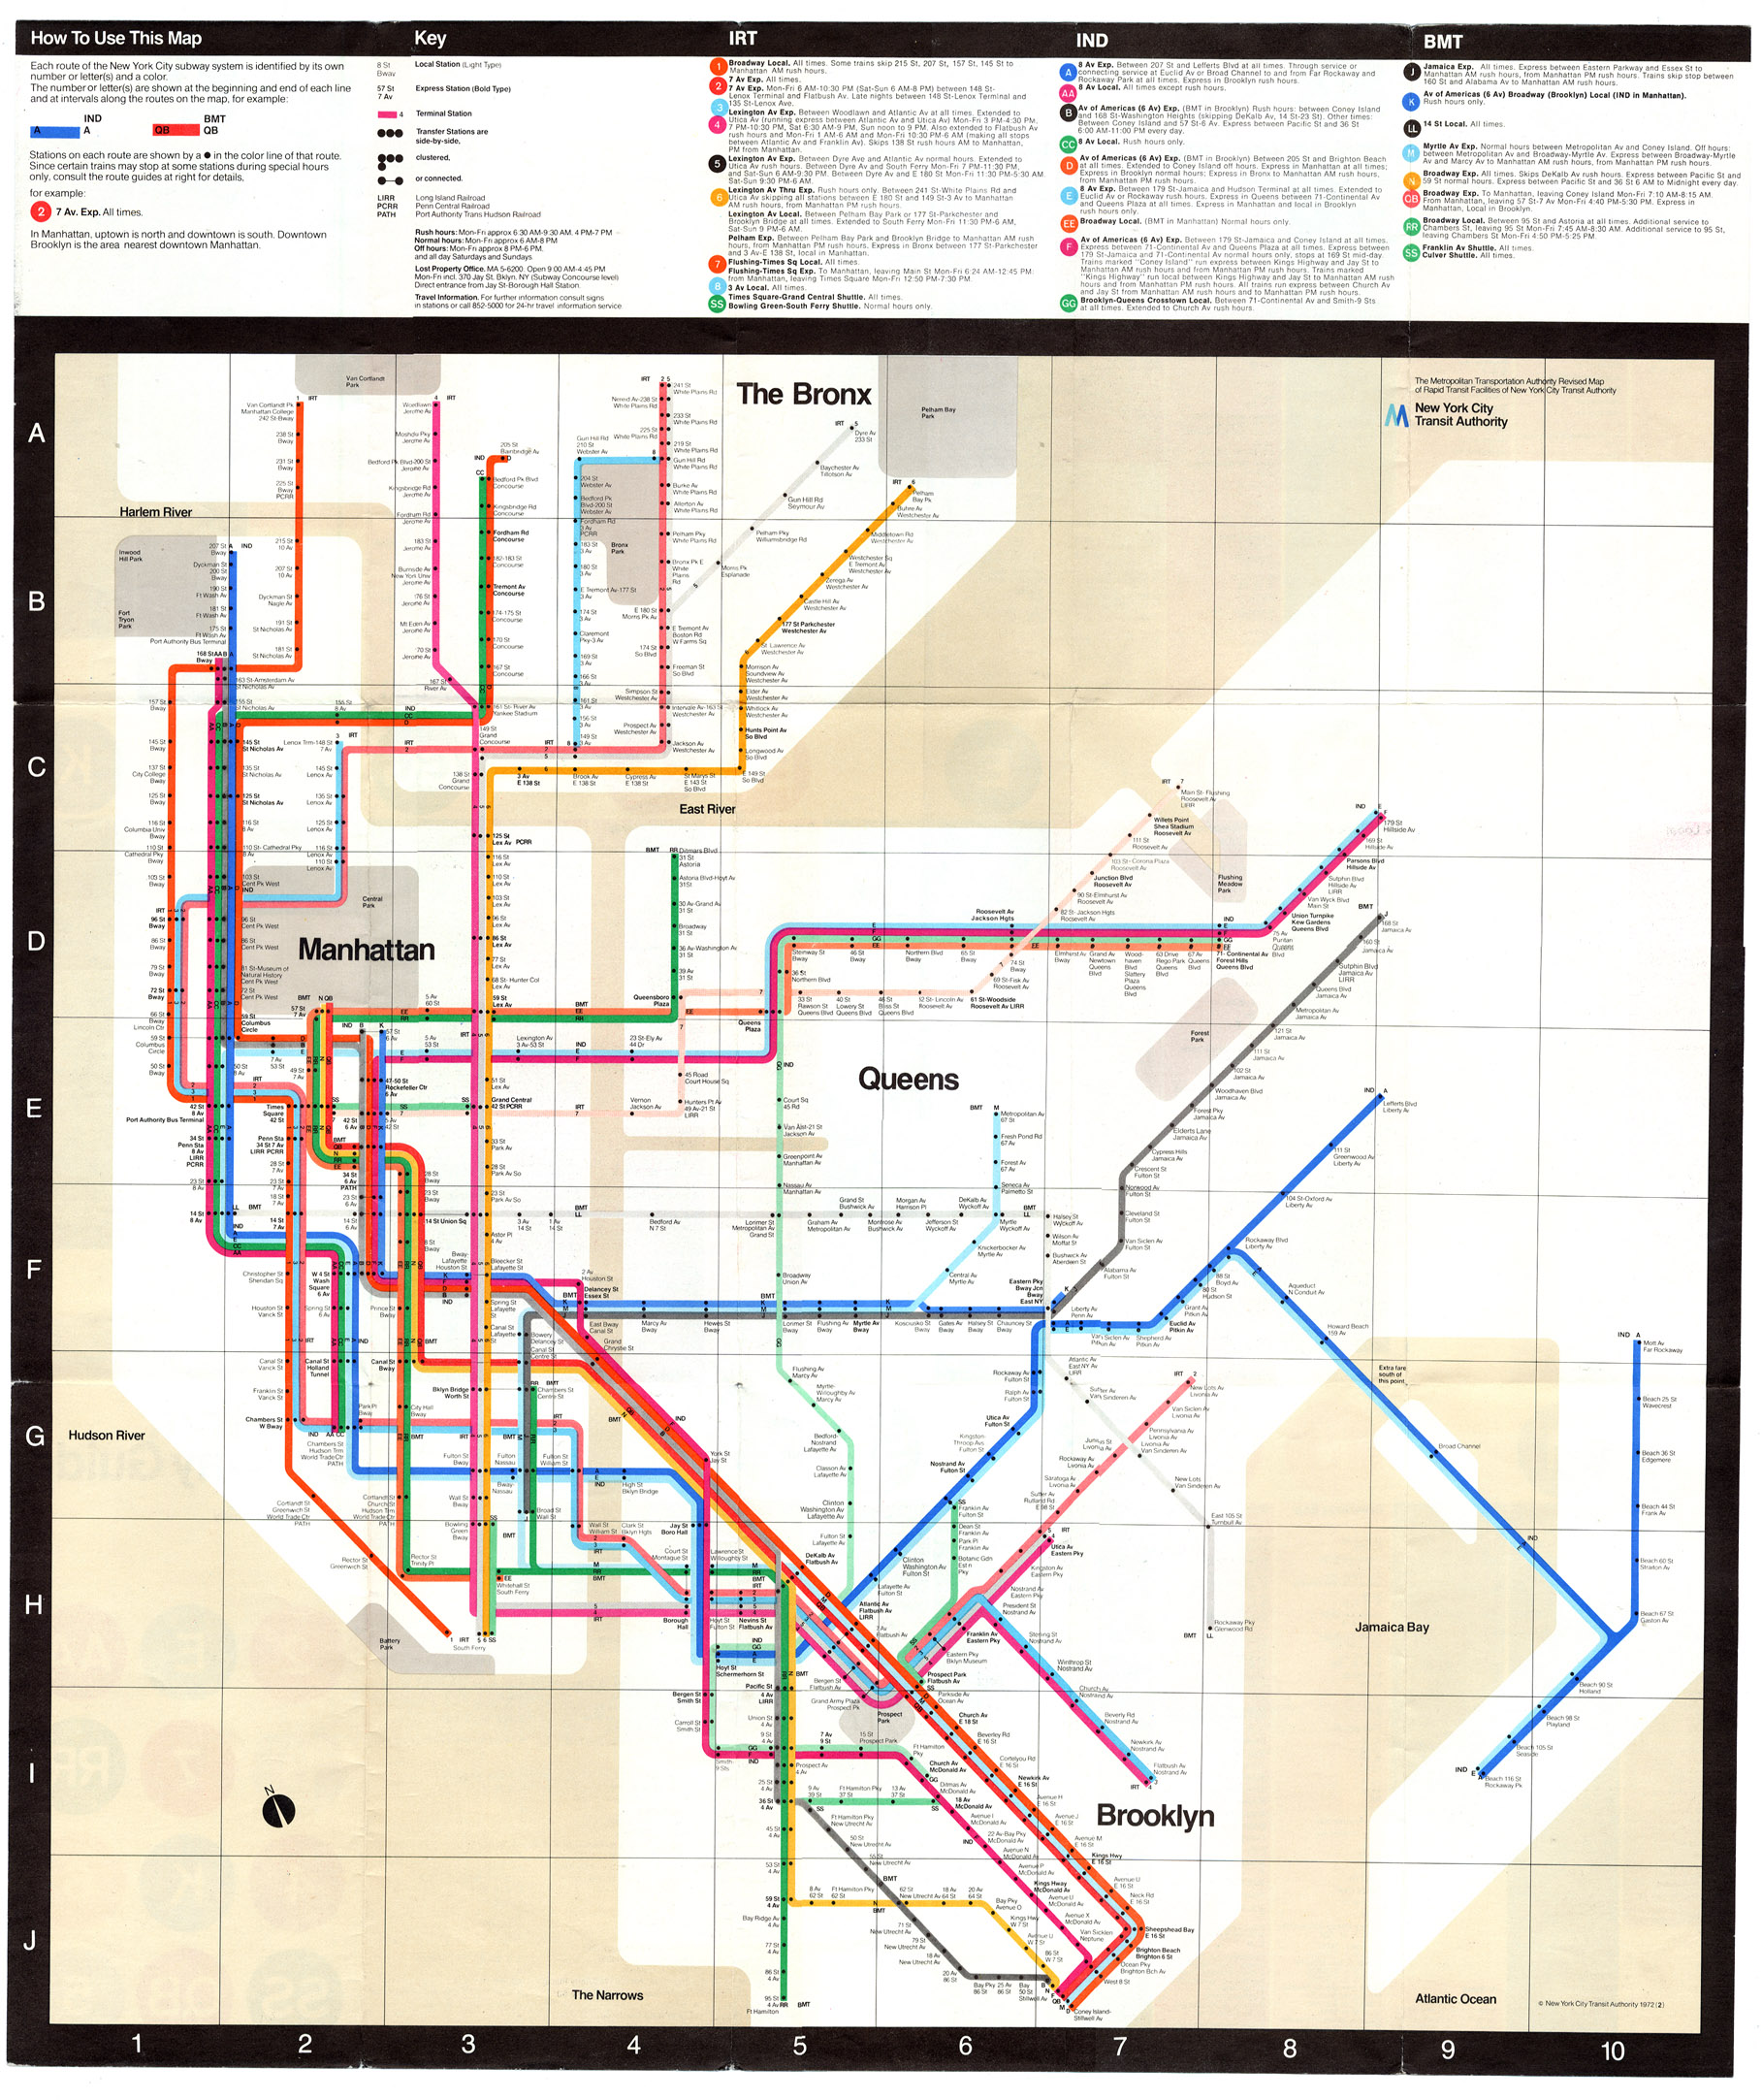 1980 Nyc Subway Map.Www Nycsubway Org